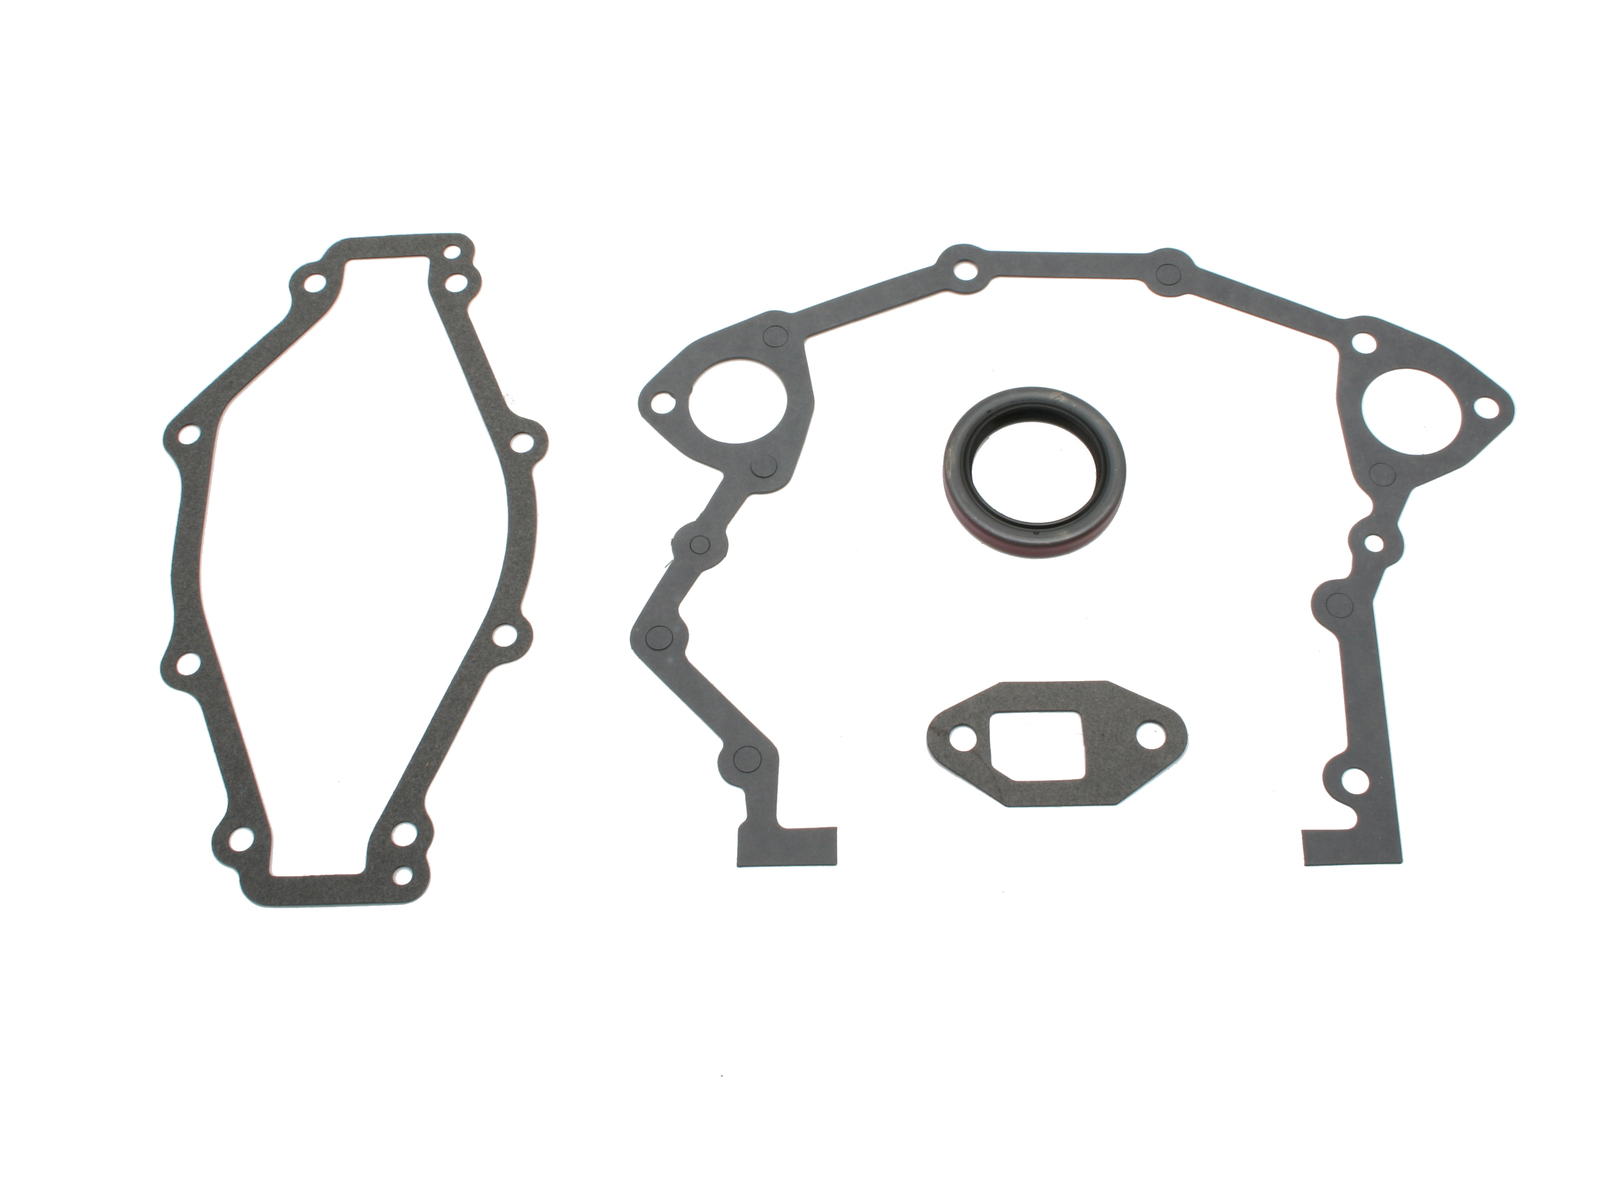 Holden V8 Timing Cover Gasket 253 308 Commodore VB VC VH